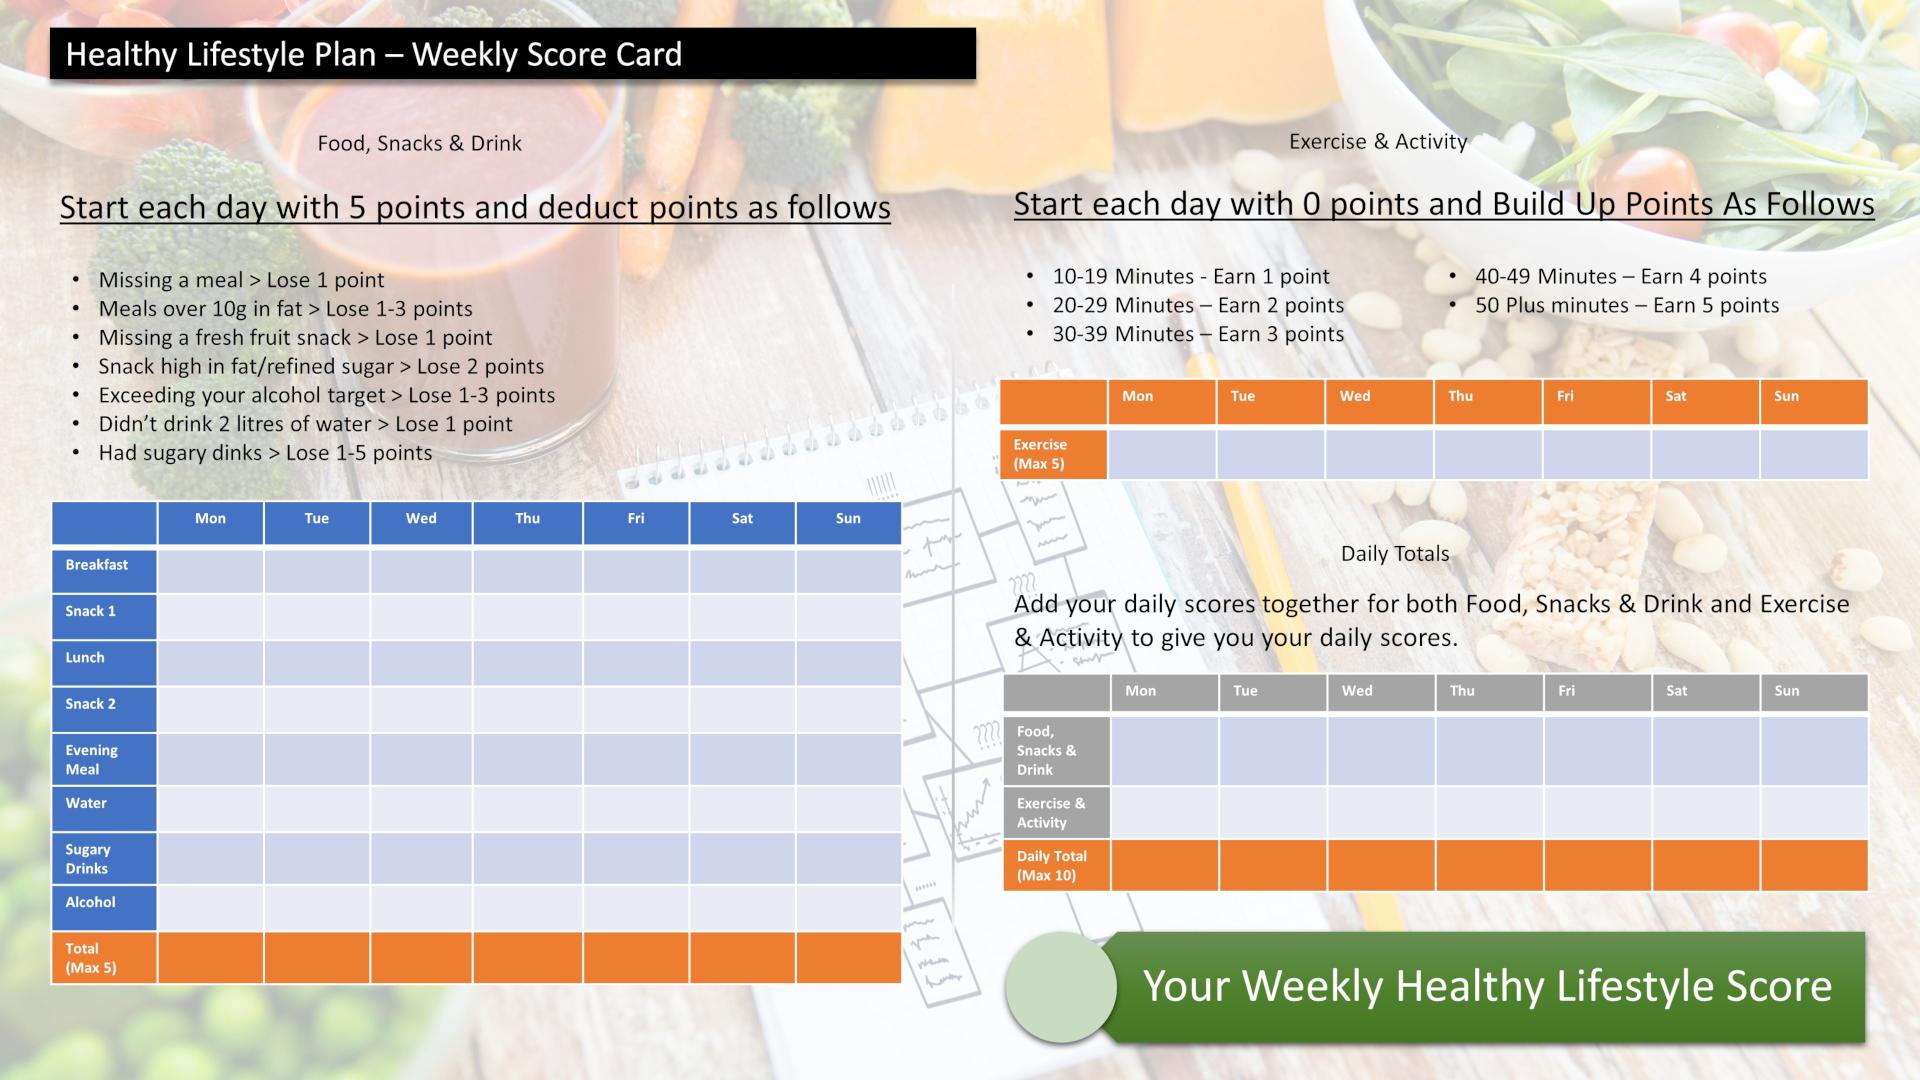 The Healthy Lifestyle Plan Scorecard